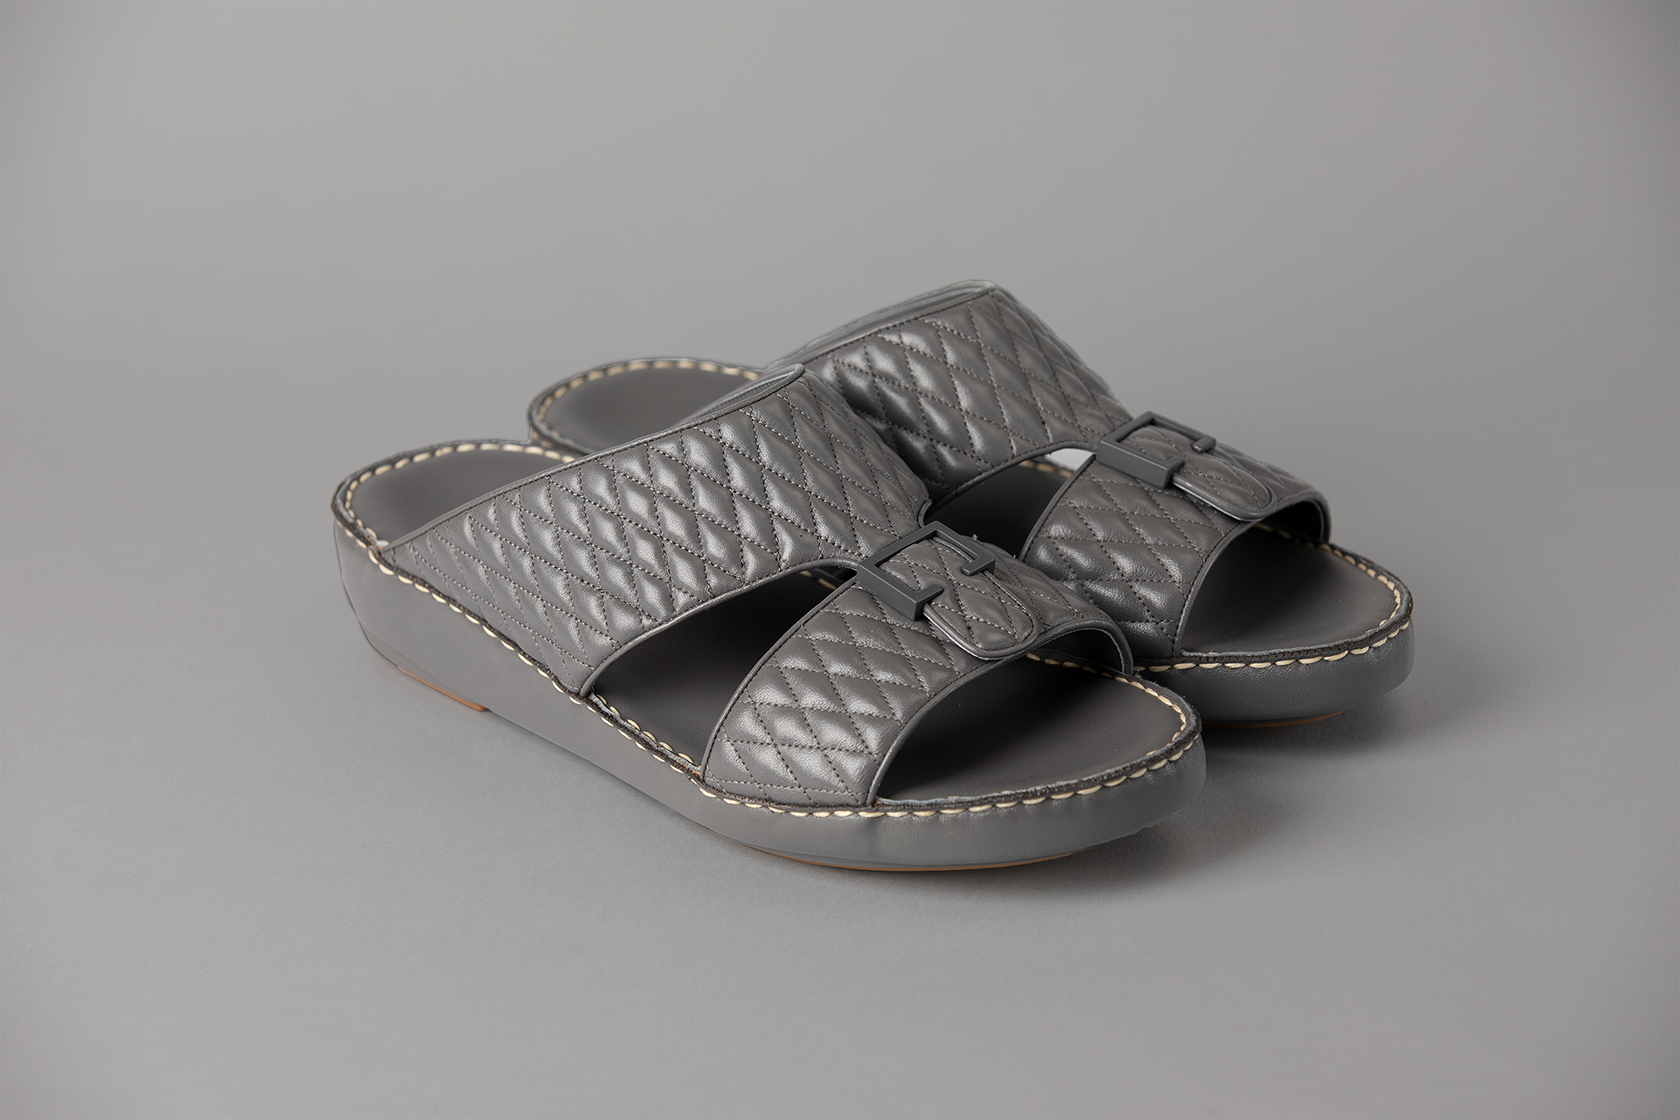 Aldo Diamond Dark Grey Arabic Sandal (4061DA)